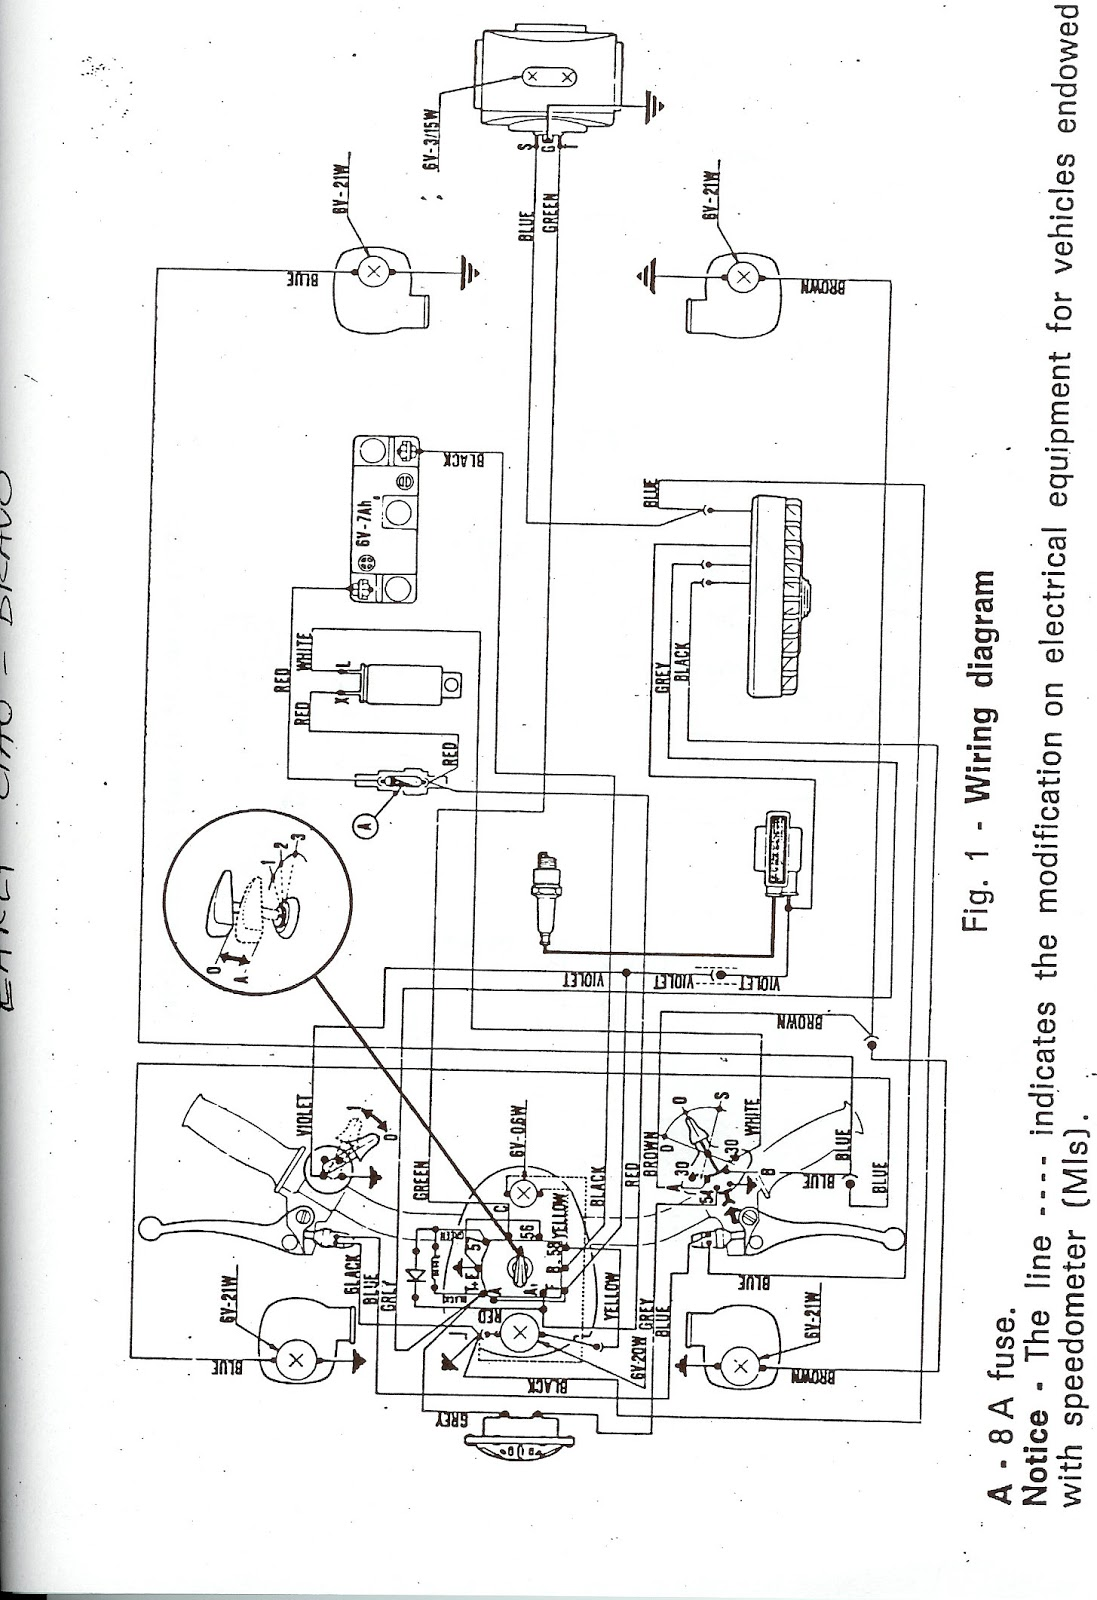 medium resolution of puch moped wiring diagram 25 wiring diagram images moped ignition diagram 50cc scooter wiring diagram